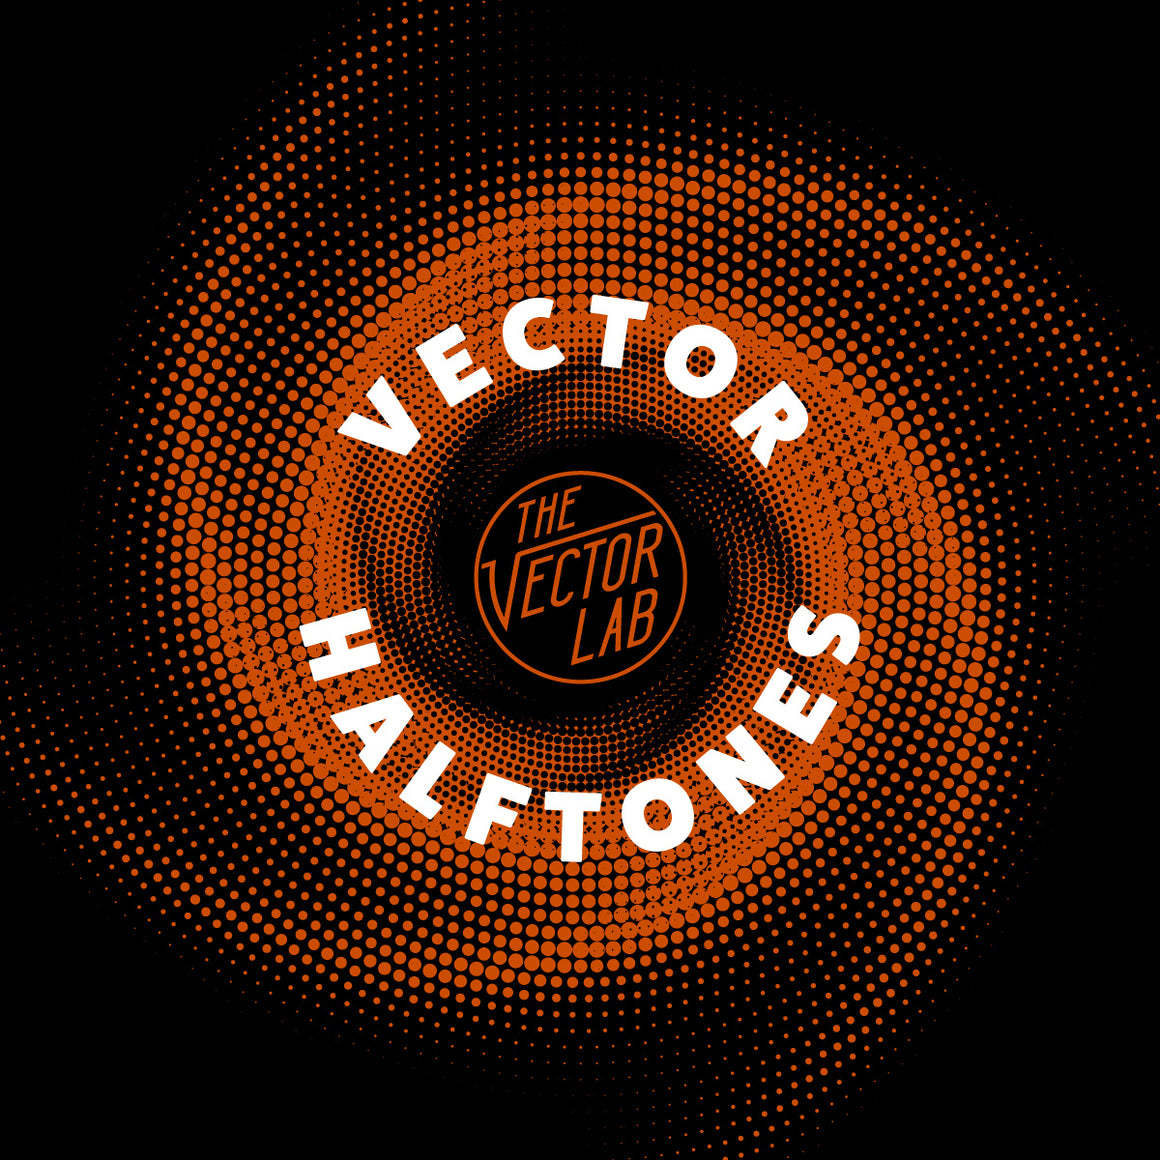 Vector halftone patterns and textures for Photoshop and Illustrator